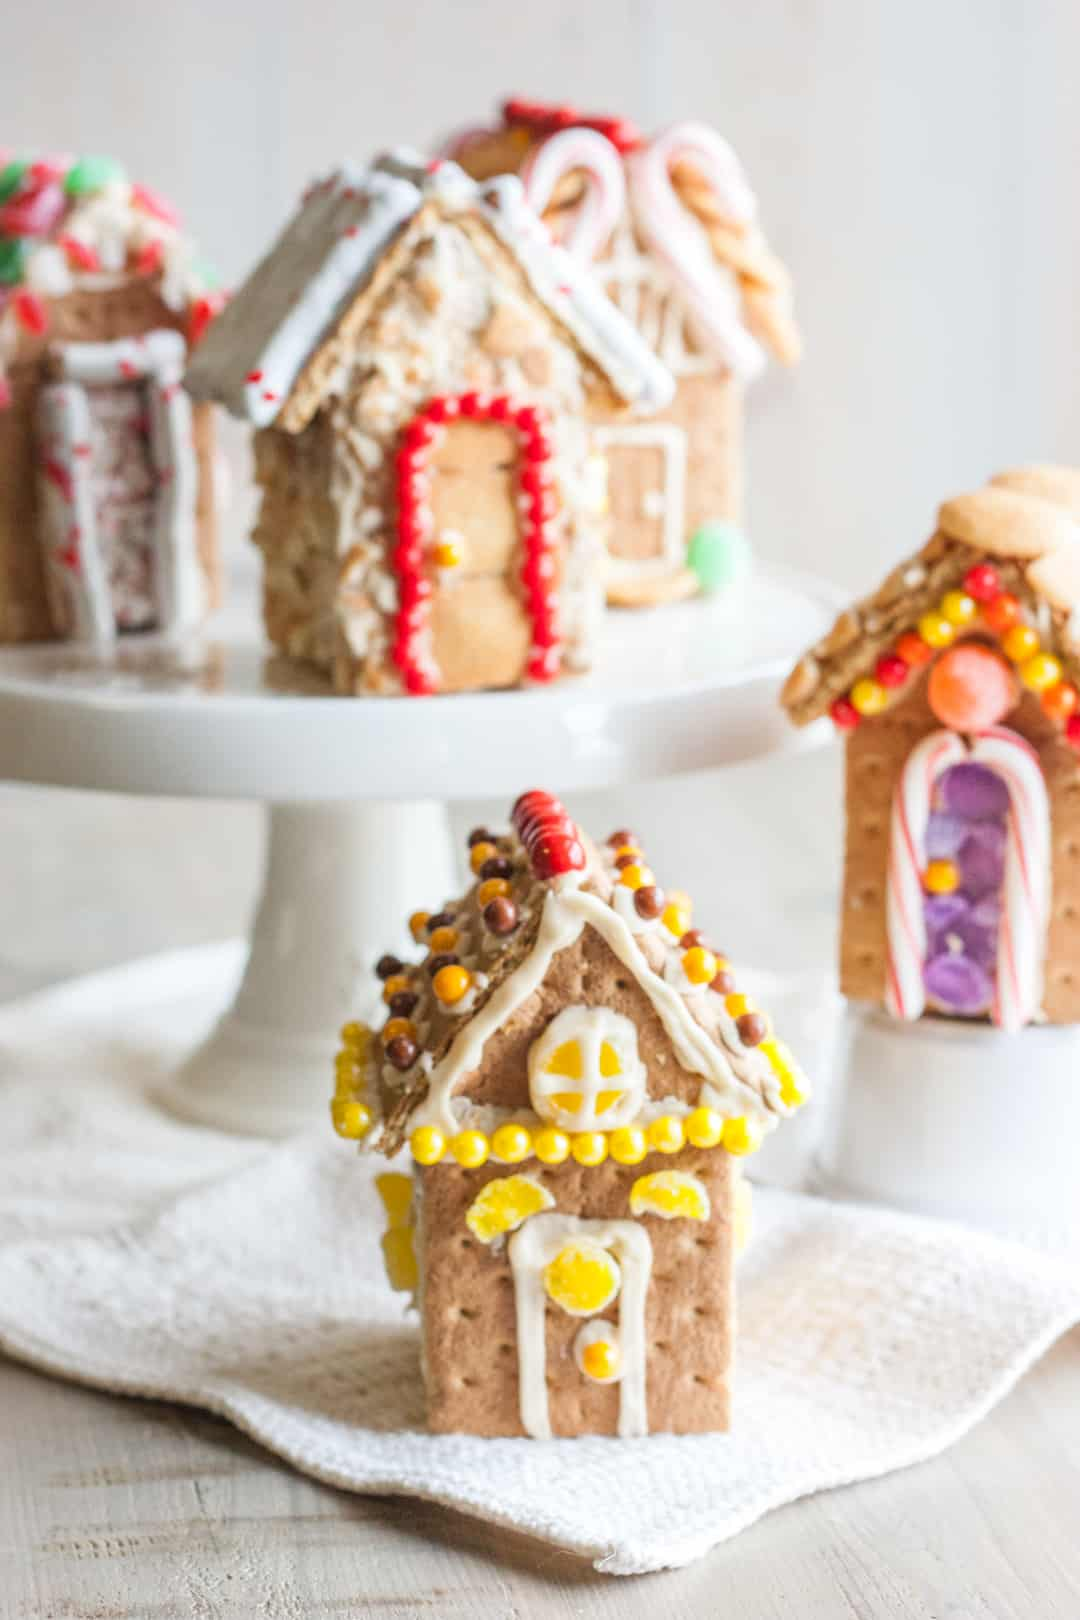 Mini graham cracker houses